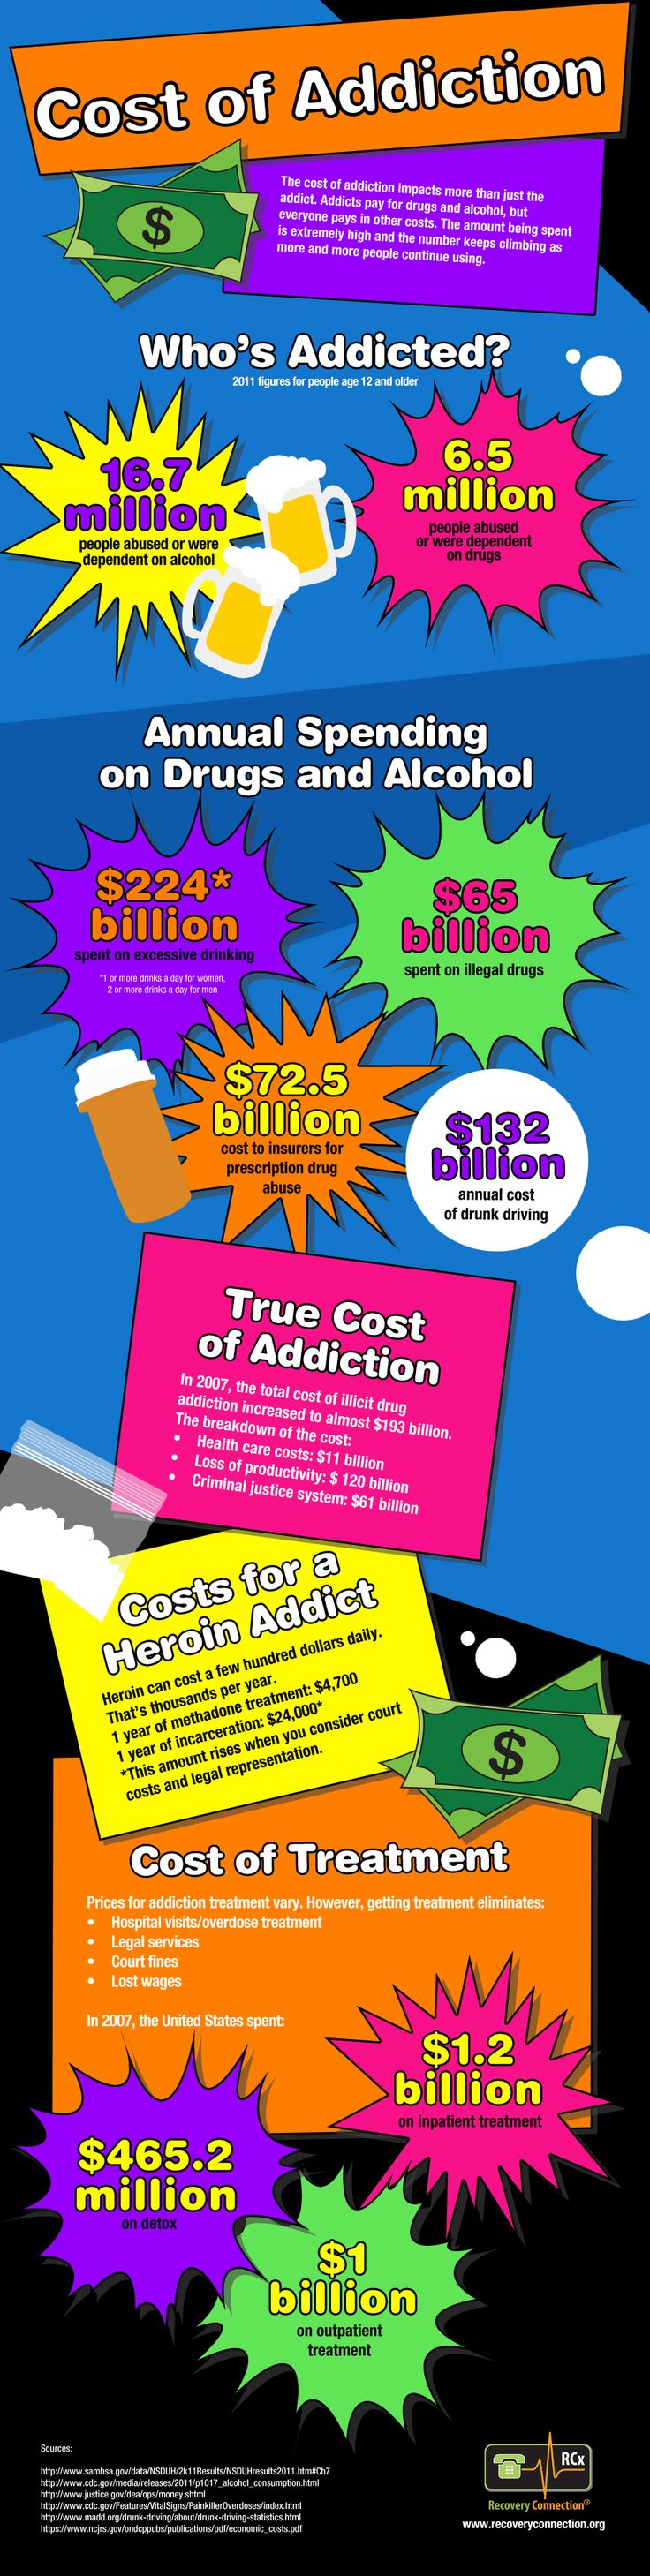 Cost of Addiction - The cost of addiction impacts more than just the addict. Addicts pay for drugs and alcohol, but everyone pays in other costs. The amount being spent is extremely and the number keeps climbing as more and more people continue using.